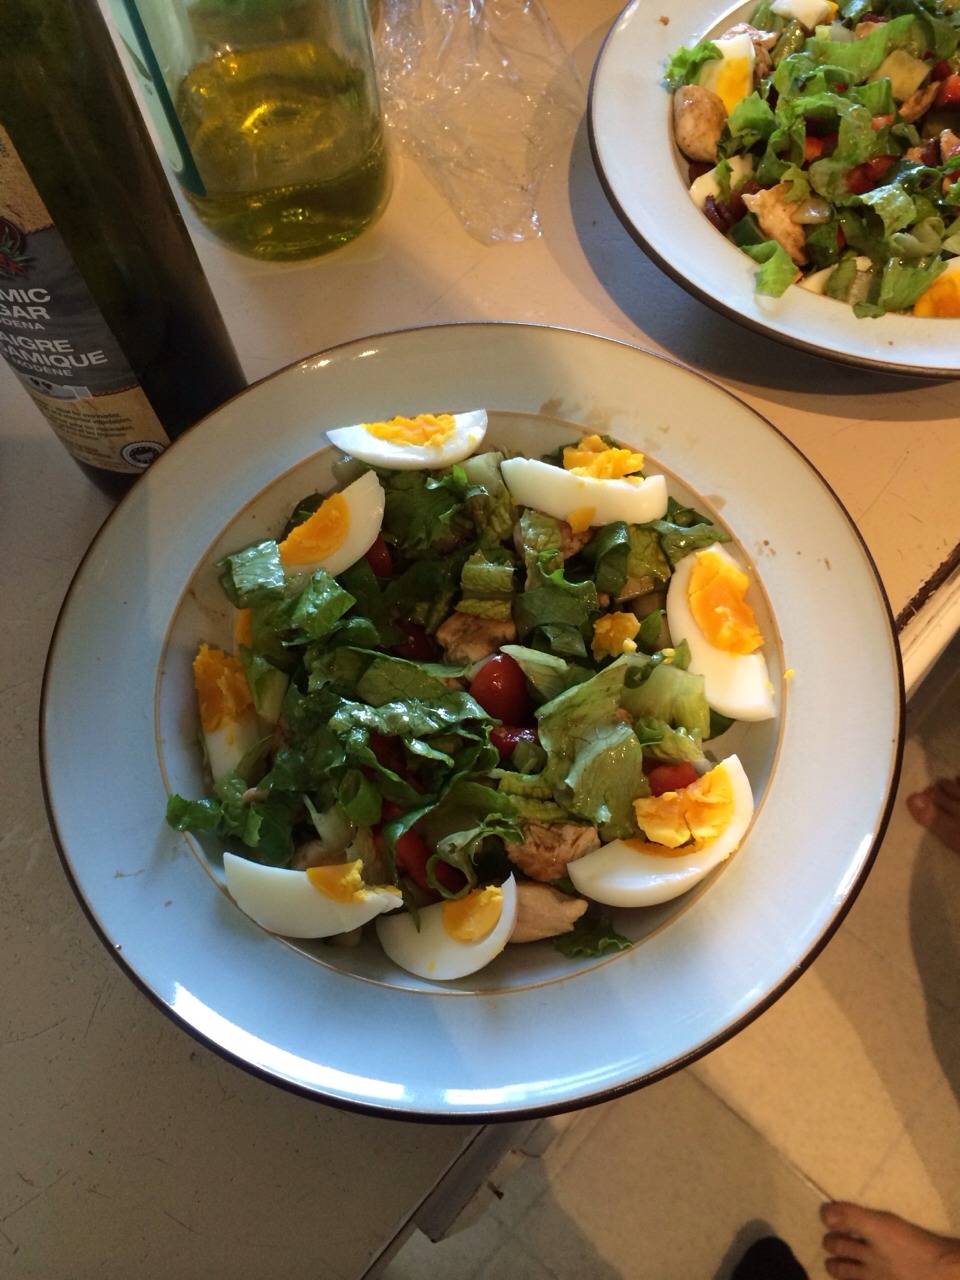 Wonderful tasting egg and chicken salad. Cook up some chicken chunks, slice a hard boiled egg, cut up some baby tomatoes and cucumber and throw it all together with some chopped lettuce. Finish it off with a bit of balsamic vinegar for a tasty healthy treat!